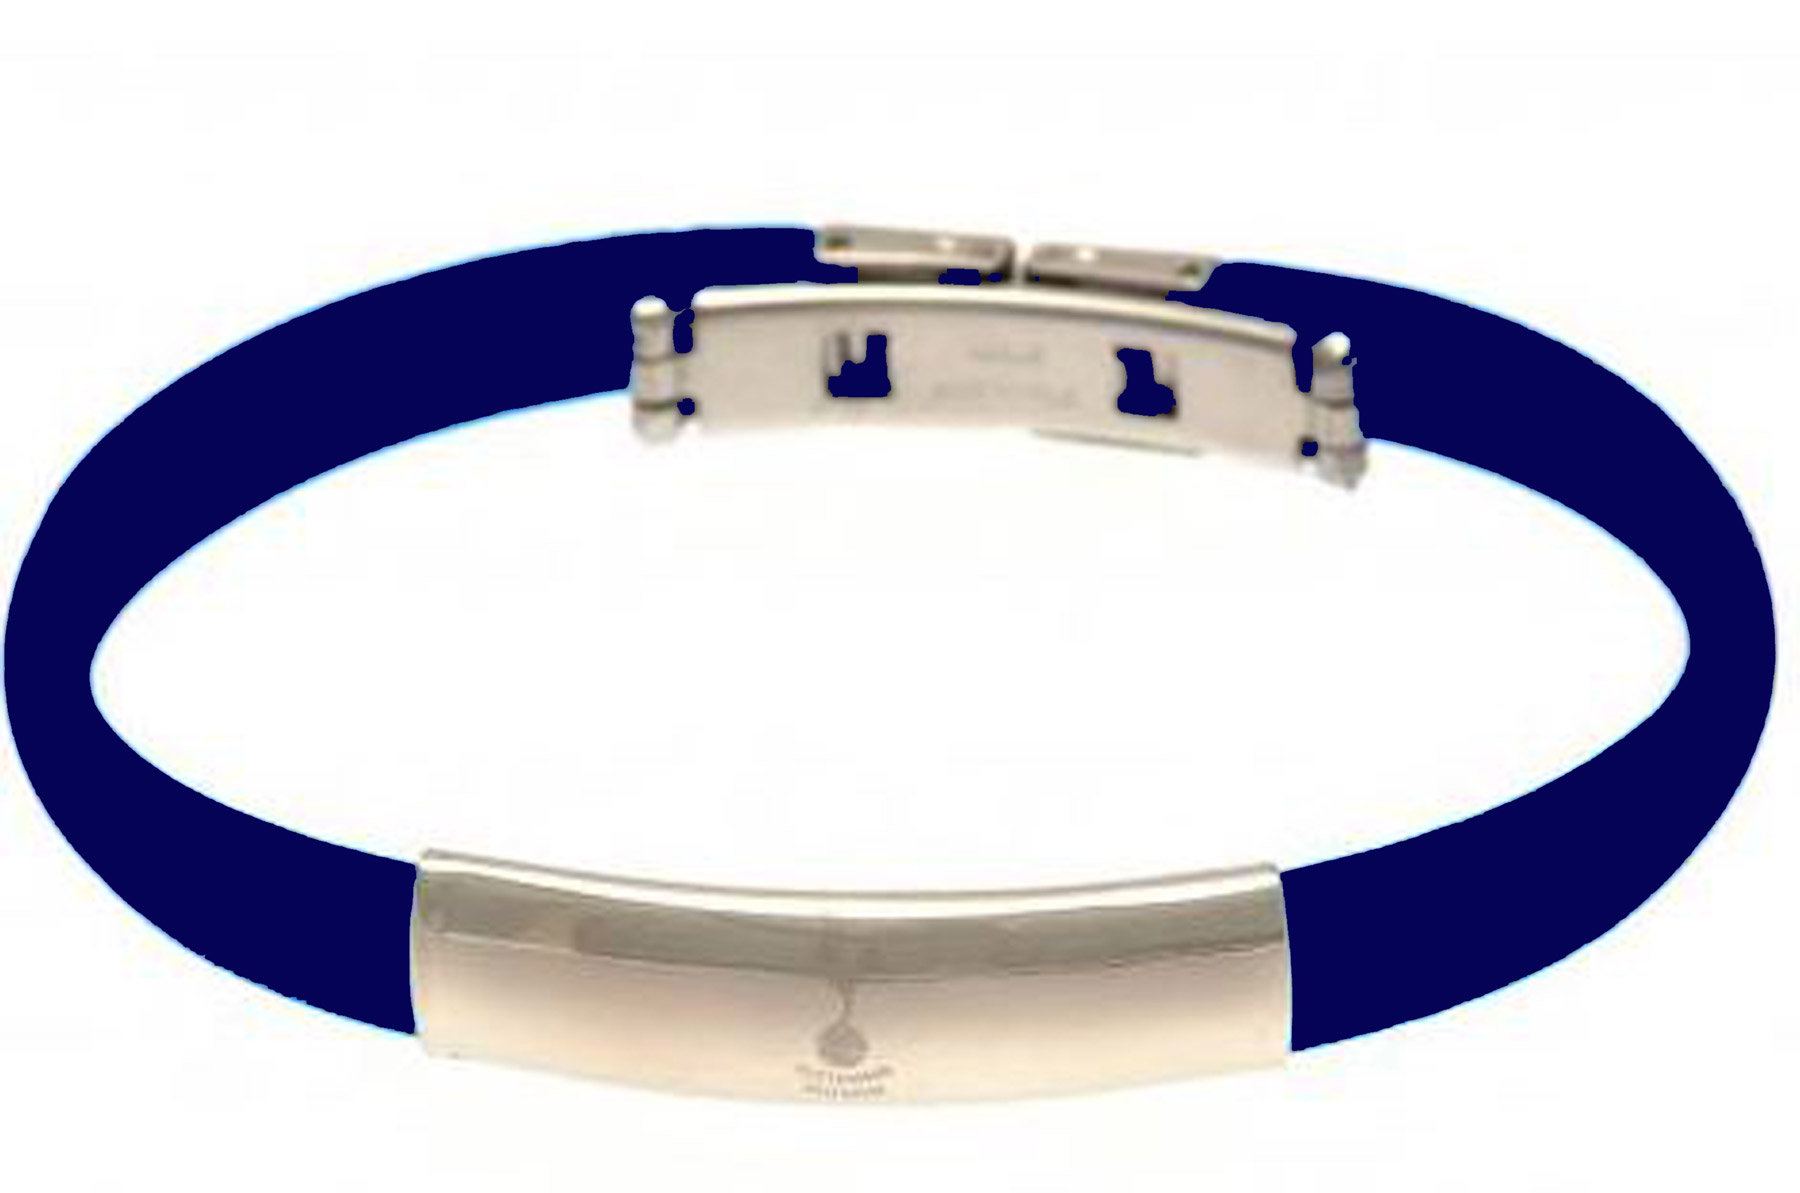 Men's Jewellery Tottenham Hotspur Crest Rubber Band Bracelet - Stainless Steel